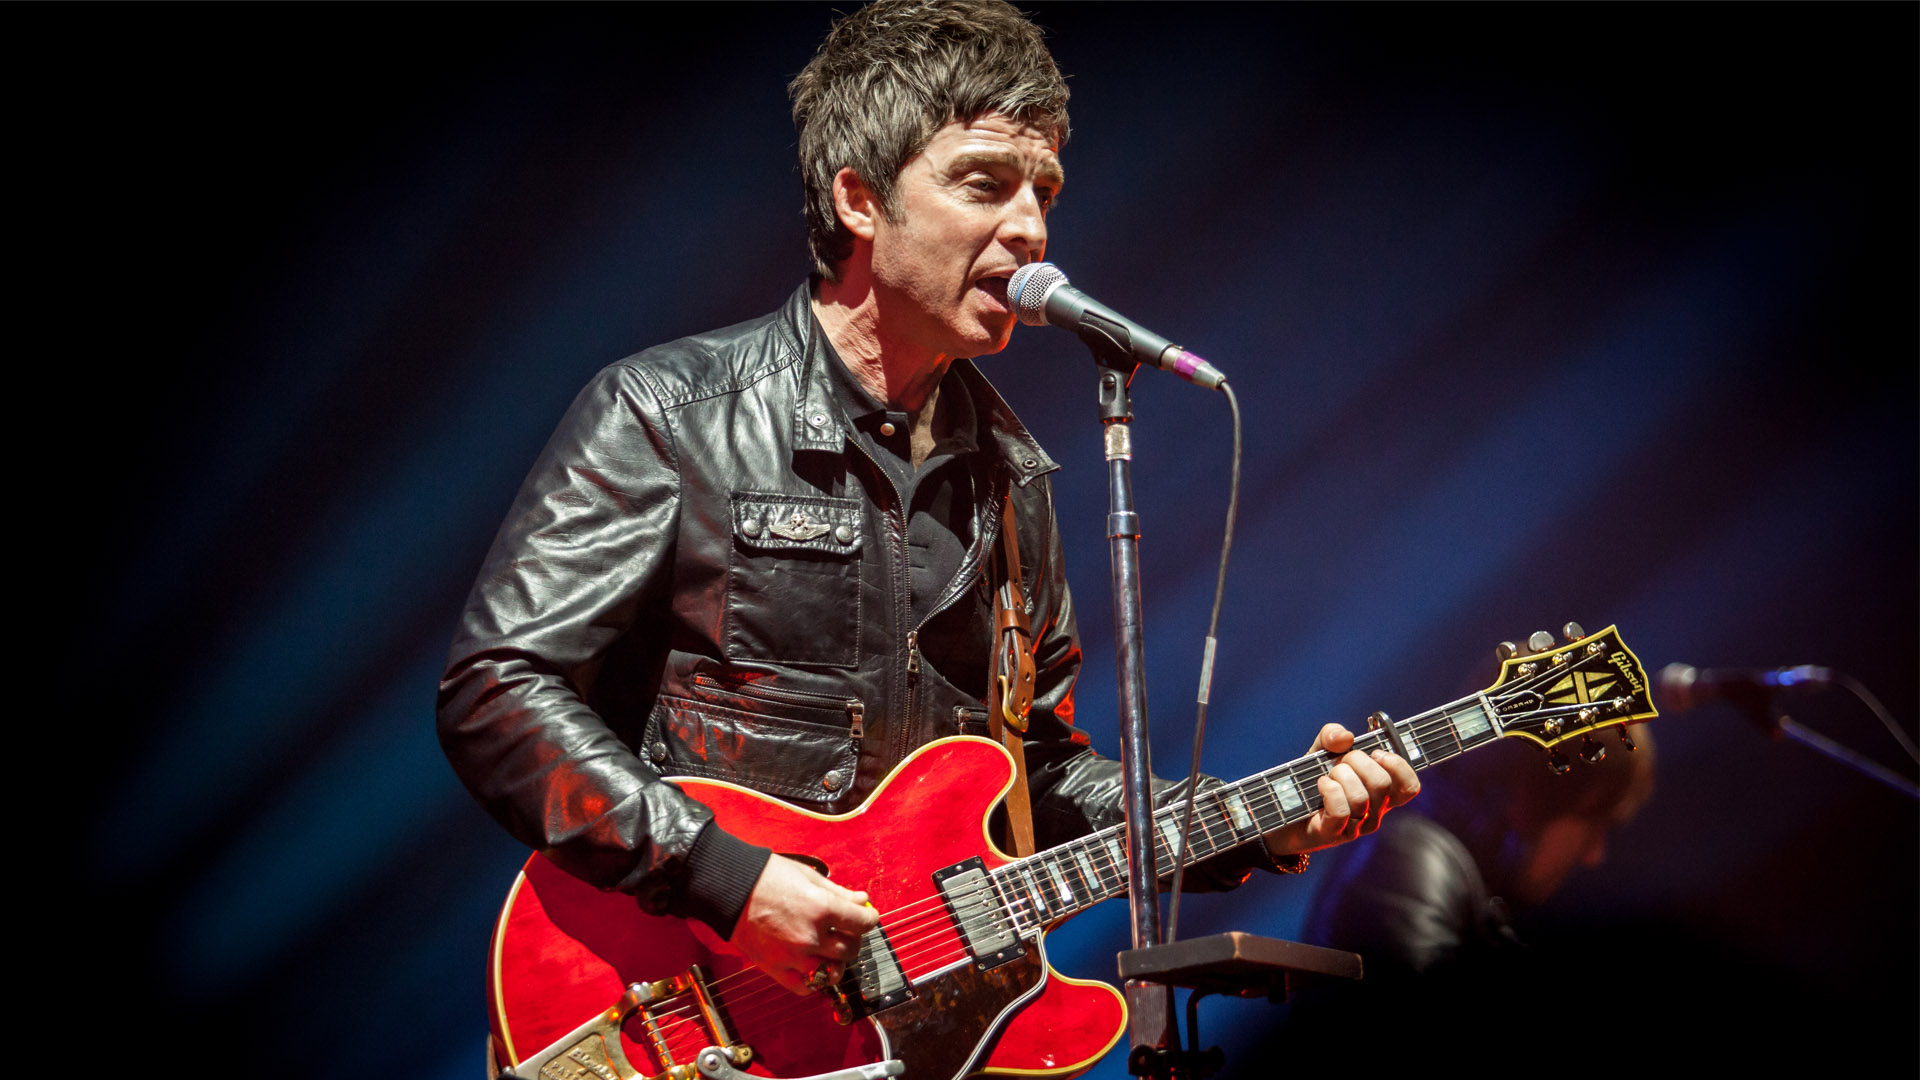 noel gallagher paris zenith 2018 Noel Gallagher was not at One Love Manchester charity show due to  noel gallagher paris zenith 2018